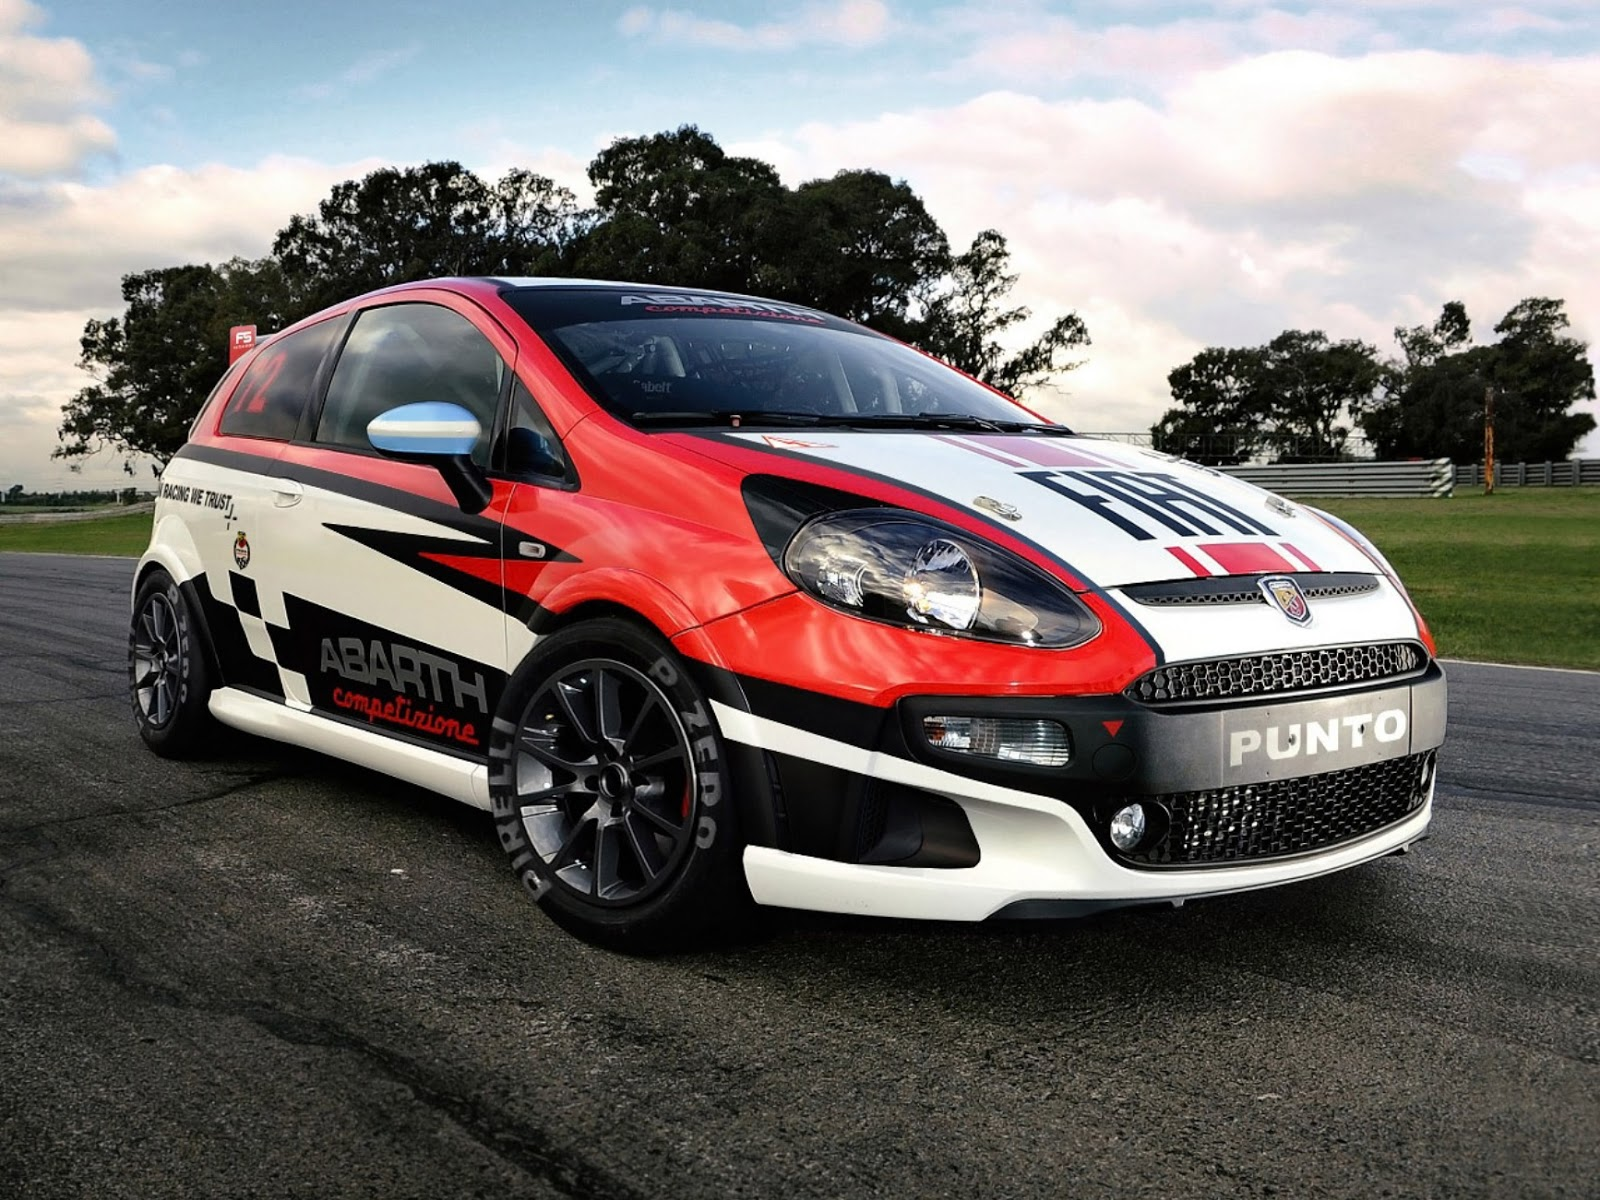 all tuning cars nz 2012 abarth fiat punto competizione. Black Bedroom Furniture Sets. Home Design Ideas